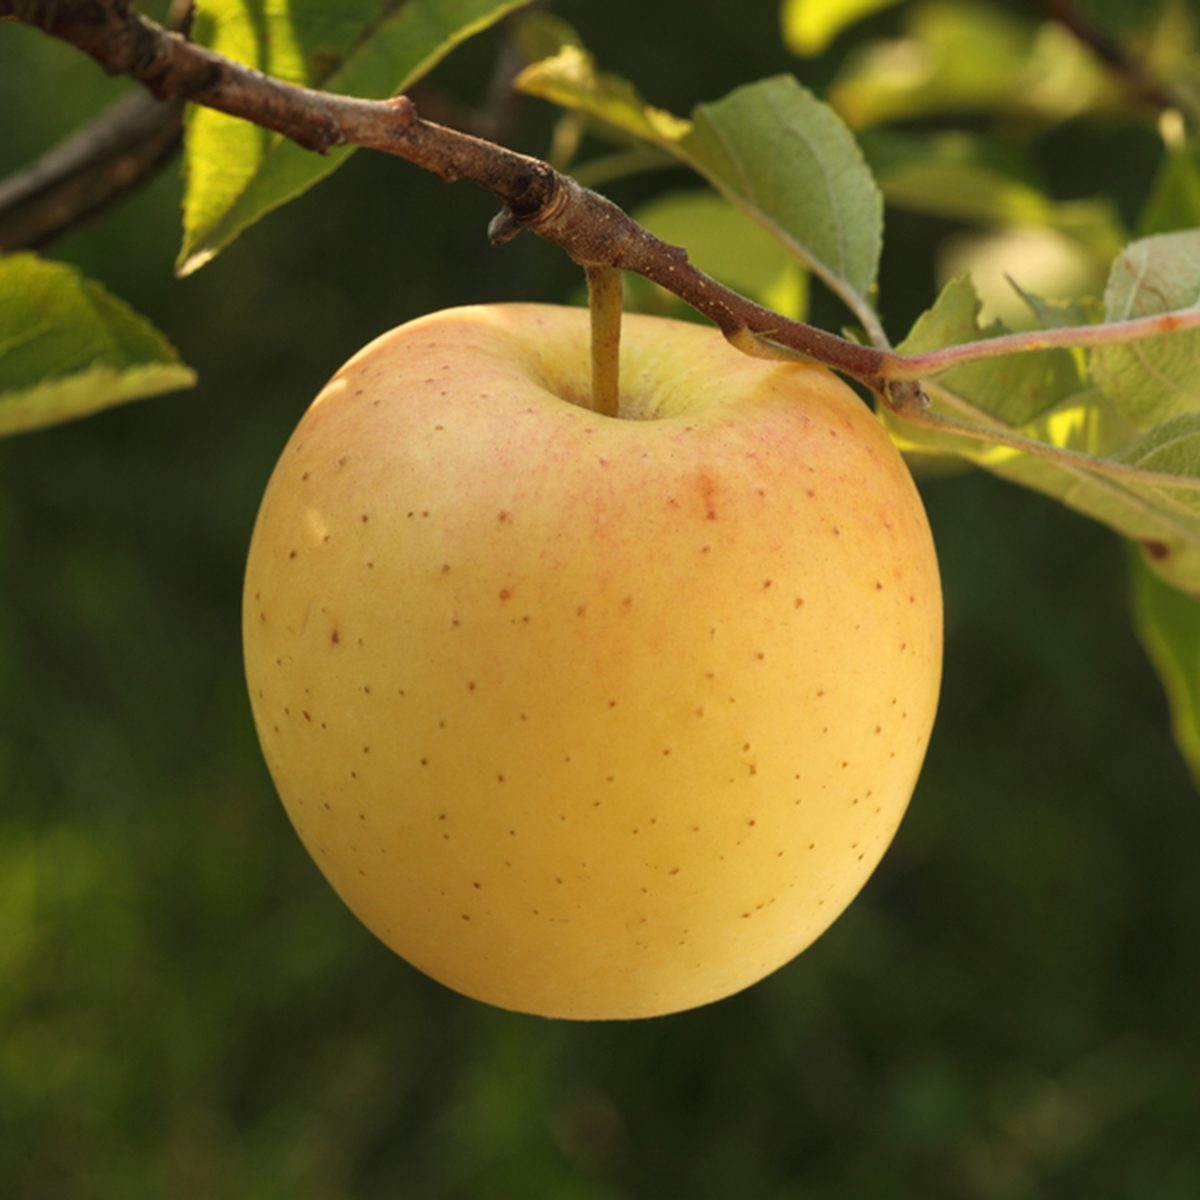 Golden delicious apple growing on the apple tree branch; Shutterstock ID 330993050; Job (TFH, TOH, RD, BNB, CWM, CM): TOH